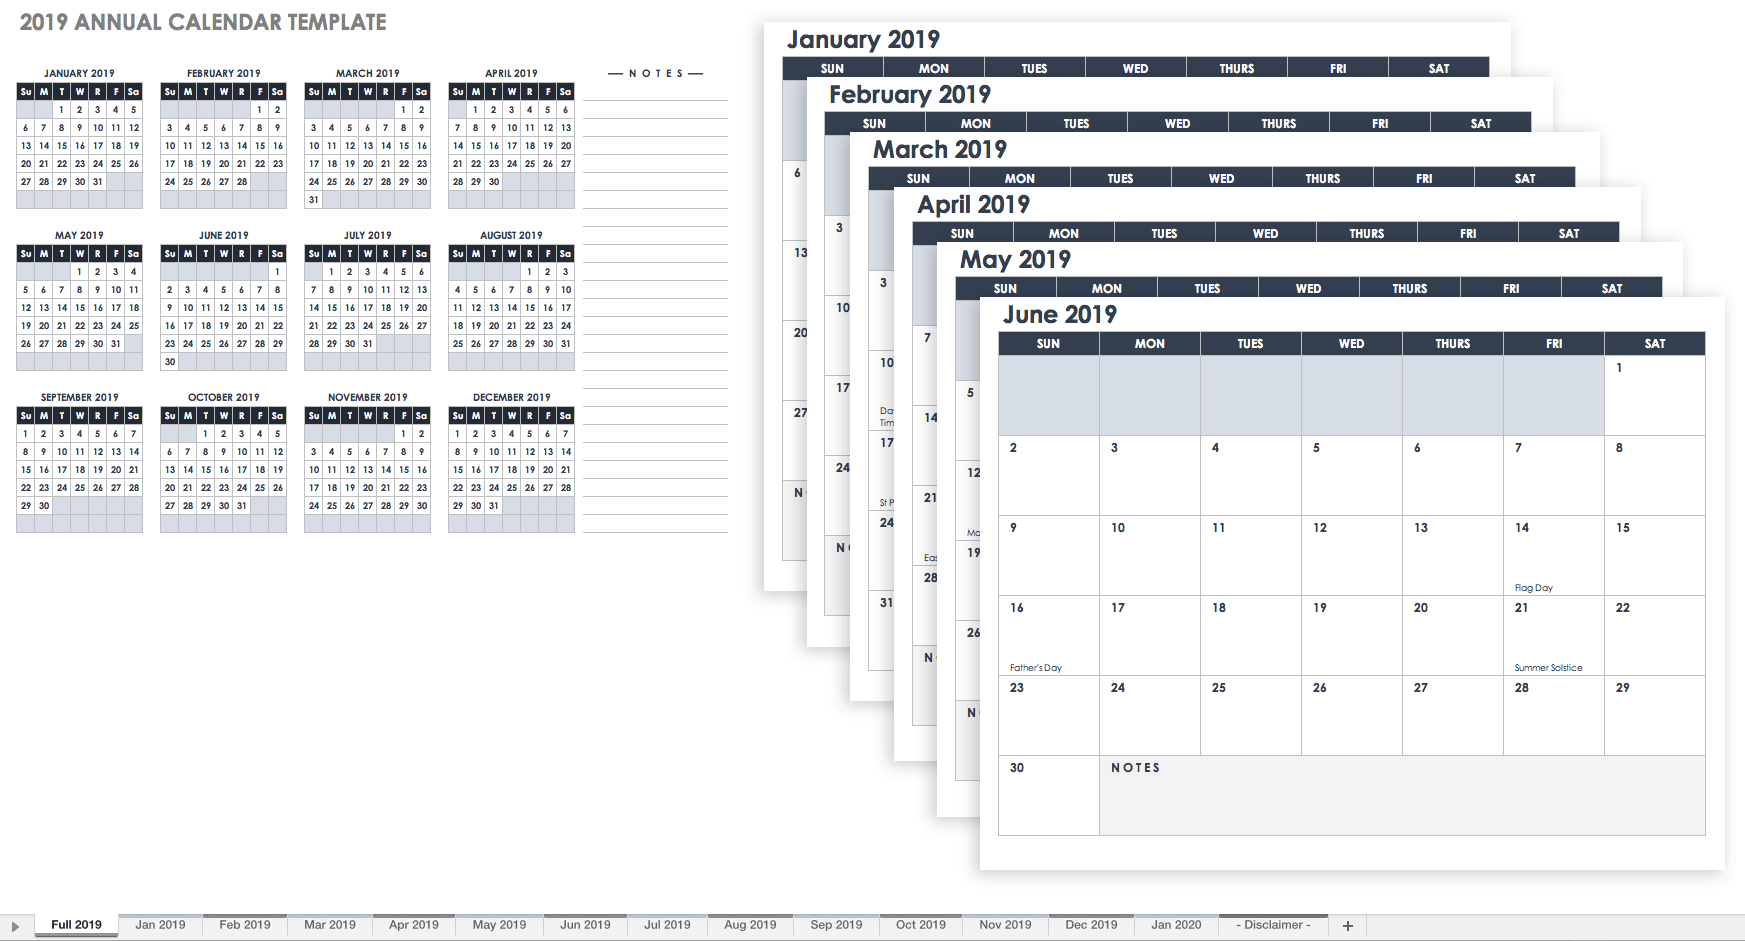 15 Free Monthly Calendar Templates | Smartsheet with regard to Editable Calendars Download Template